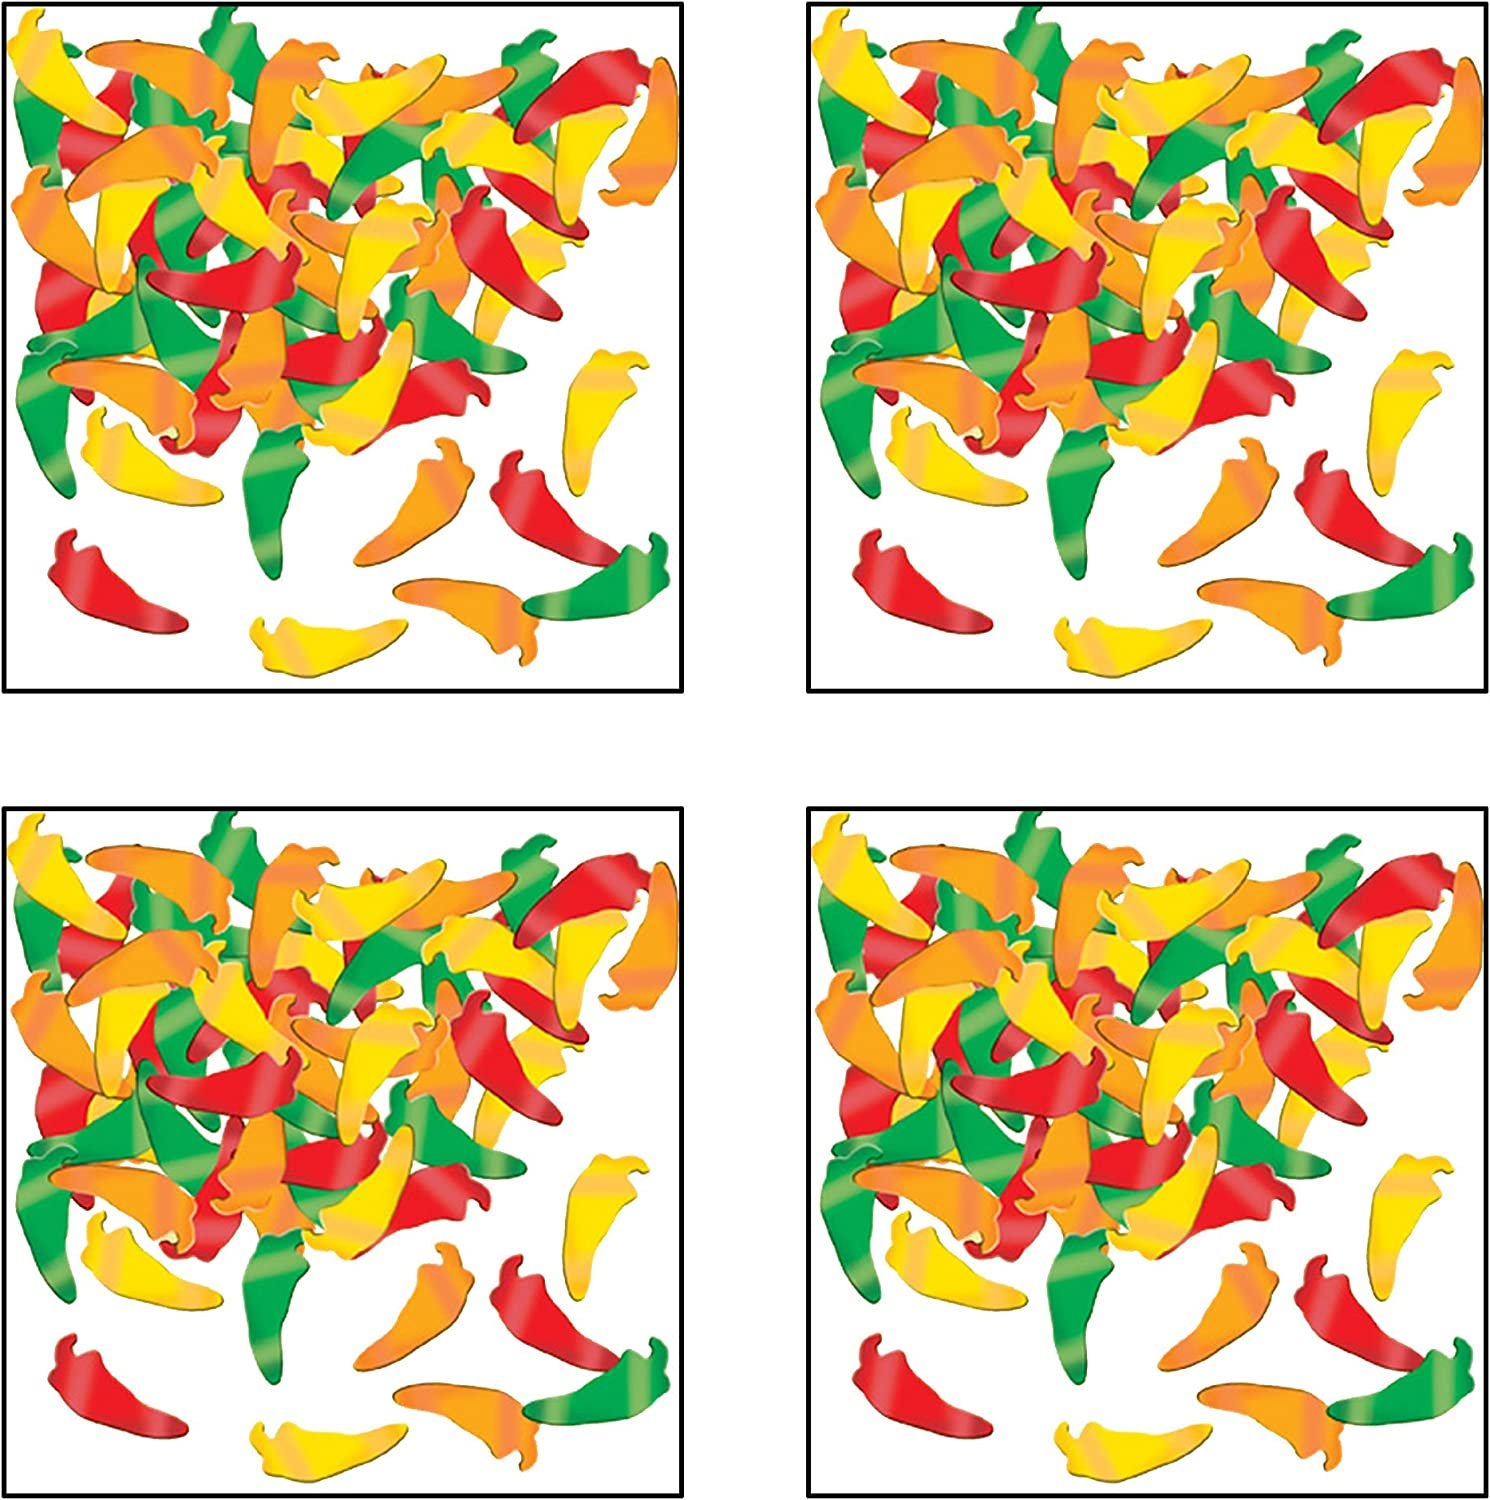 Amazon Com Fanci Fetti Chili Peppers Gd G O R Party Accessory 1 Count 1 Oz Pkg Childrens Party Confetti Toys Games